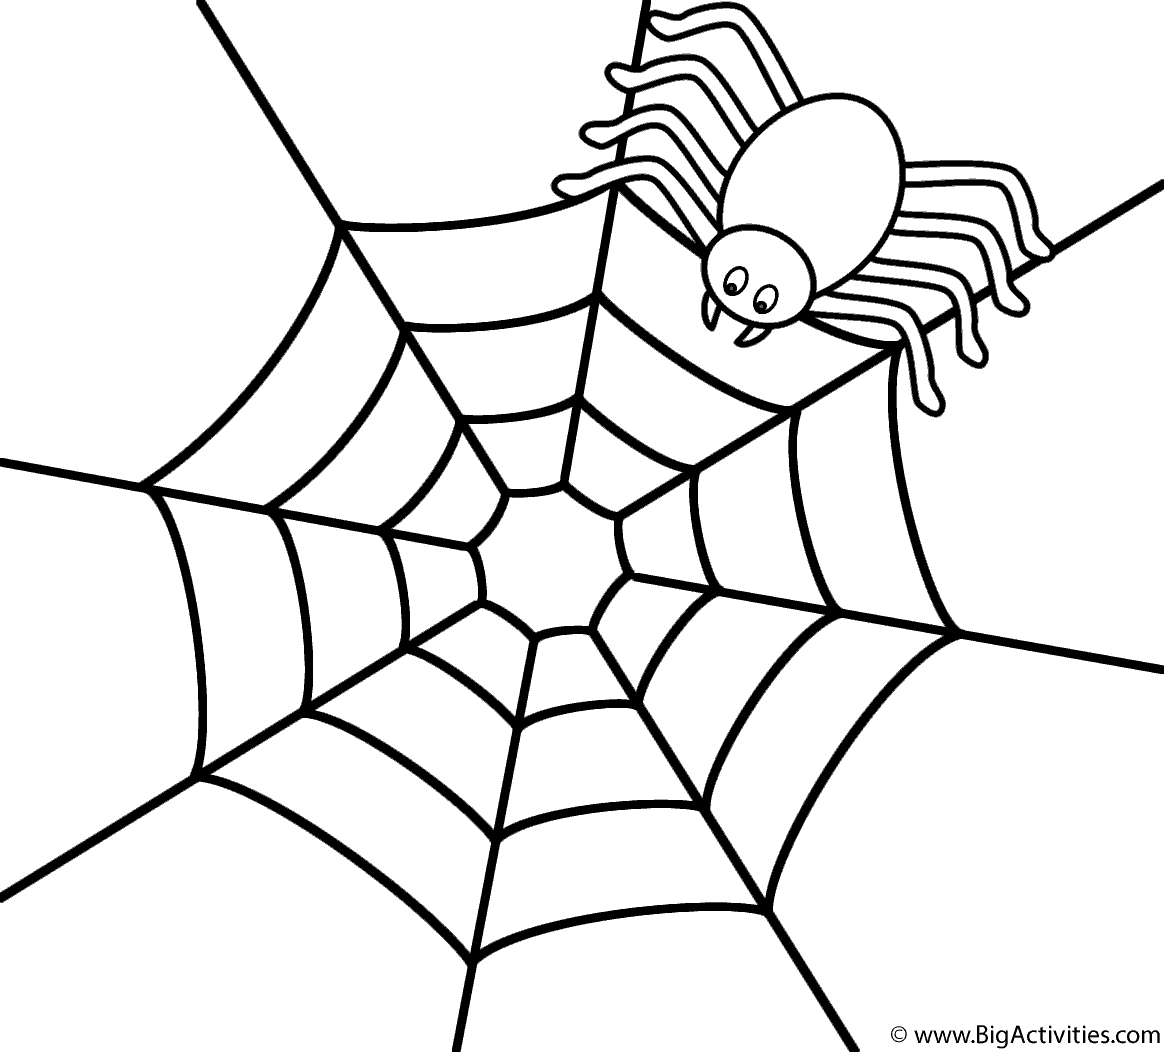 1164x1052 Spider On Top Of Web Coloring Page Insects Spider Coloring Page